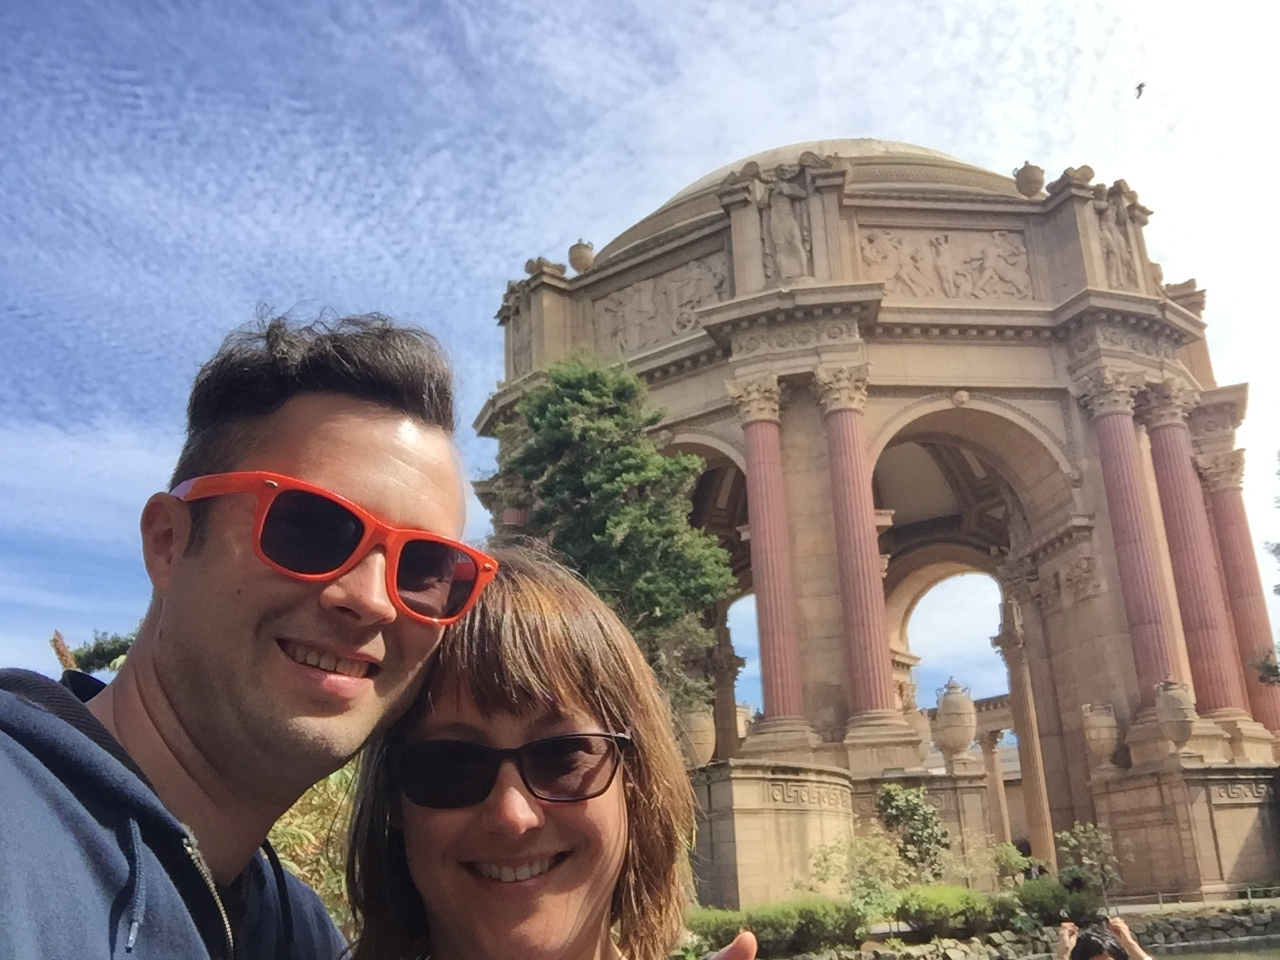 at the palace of fine arts